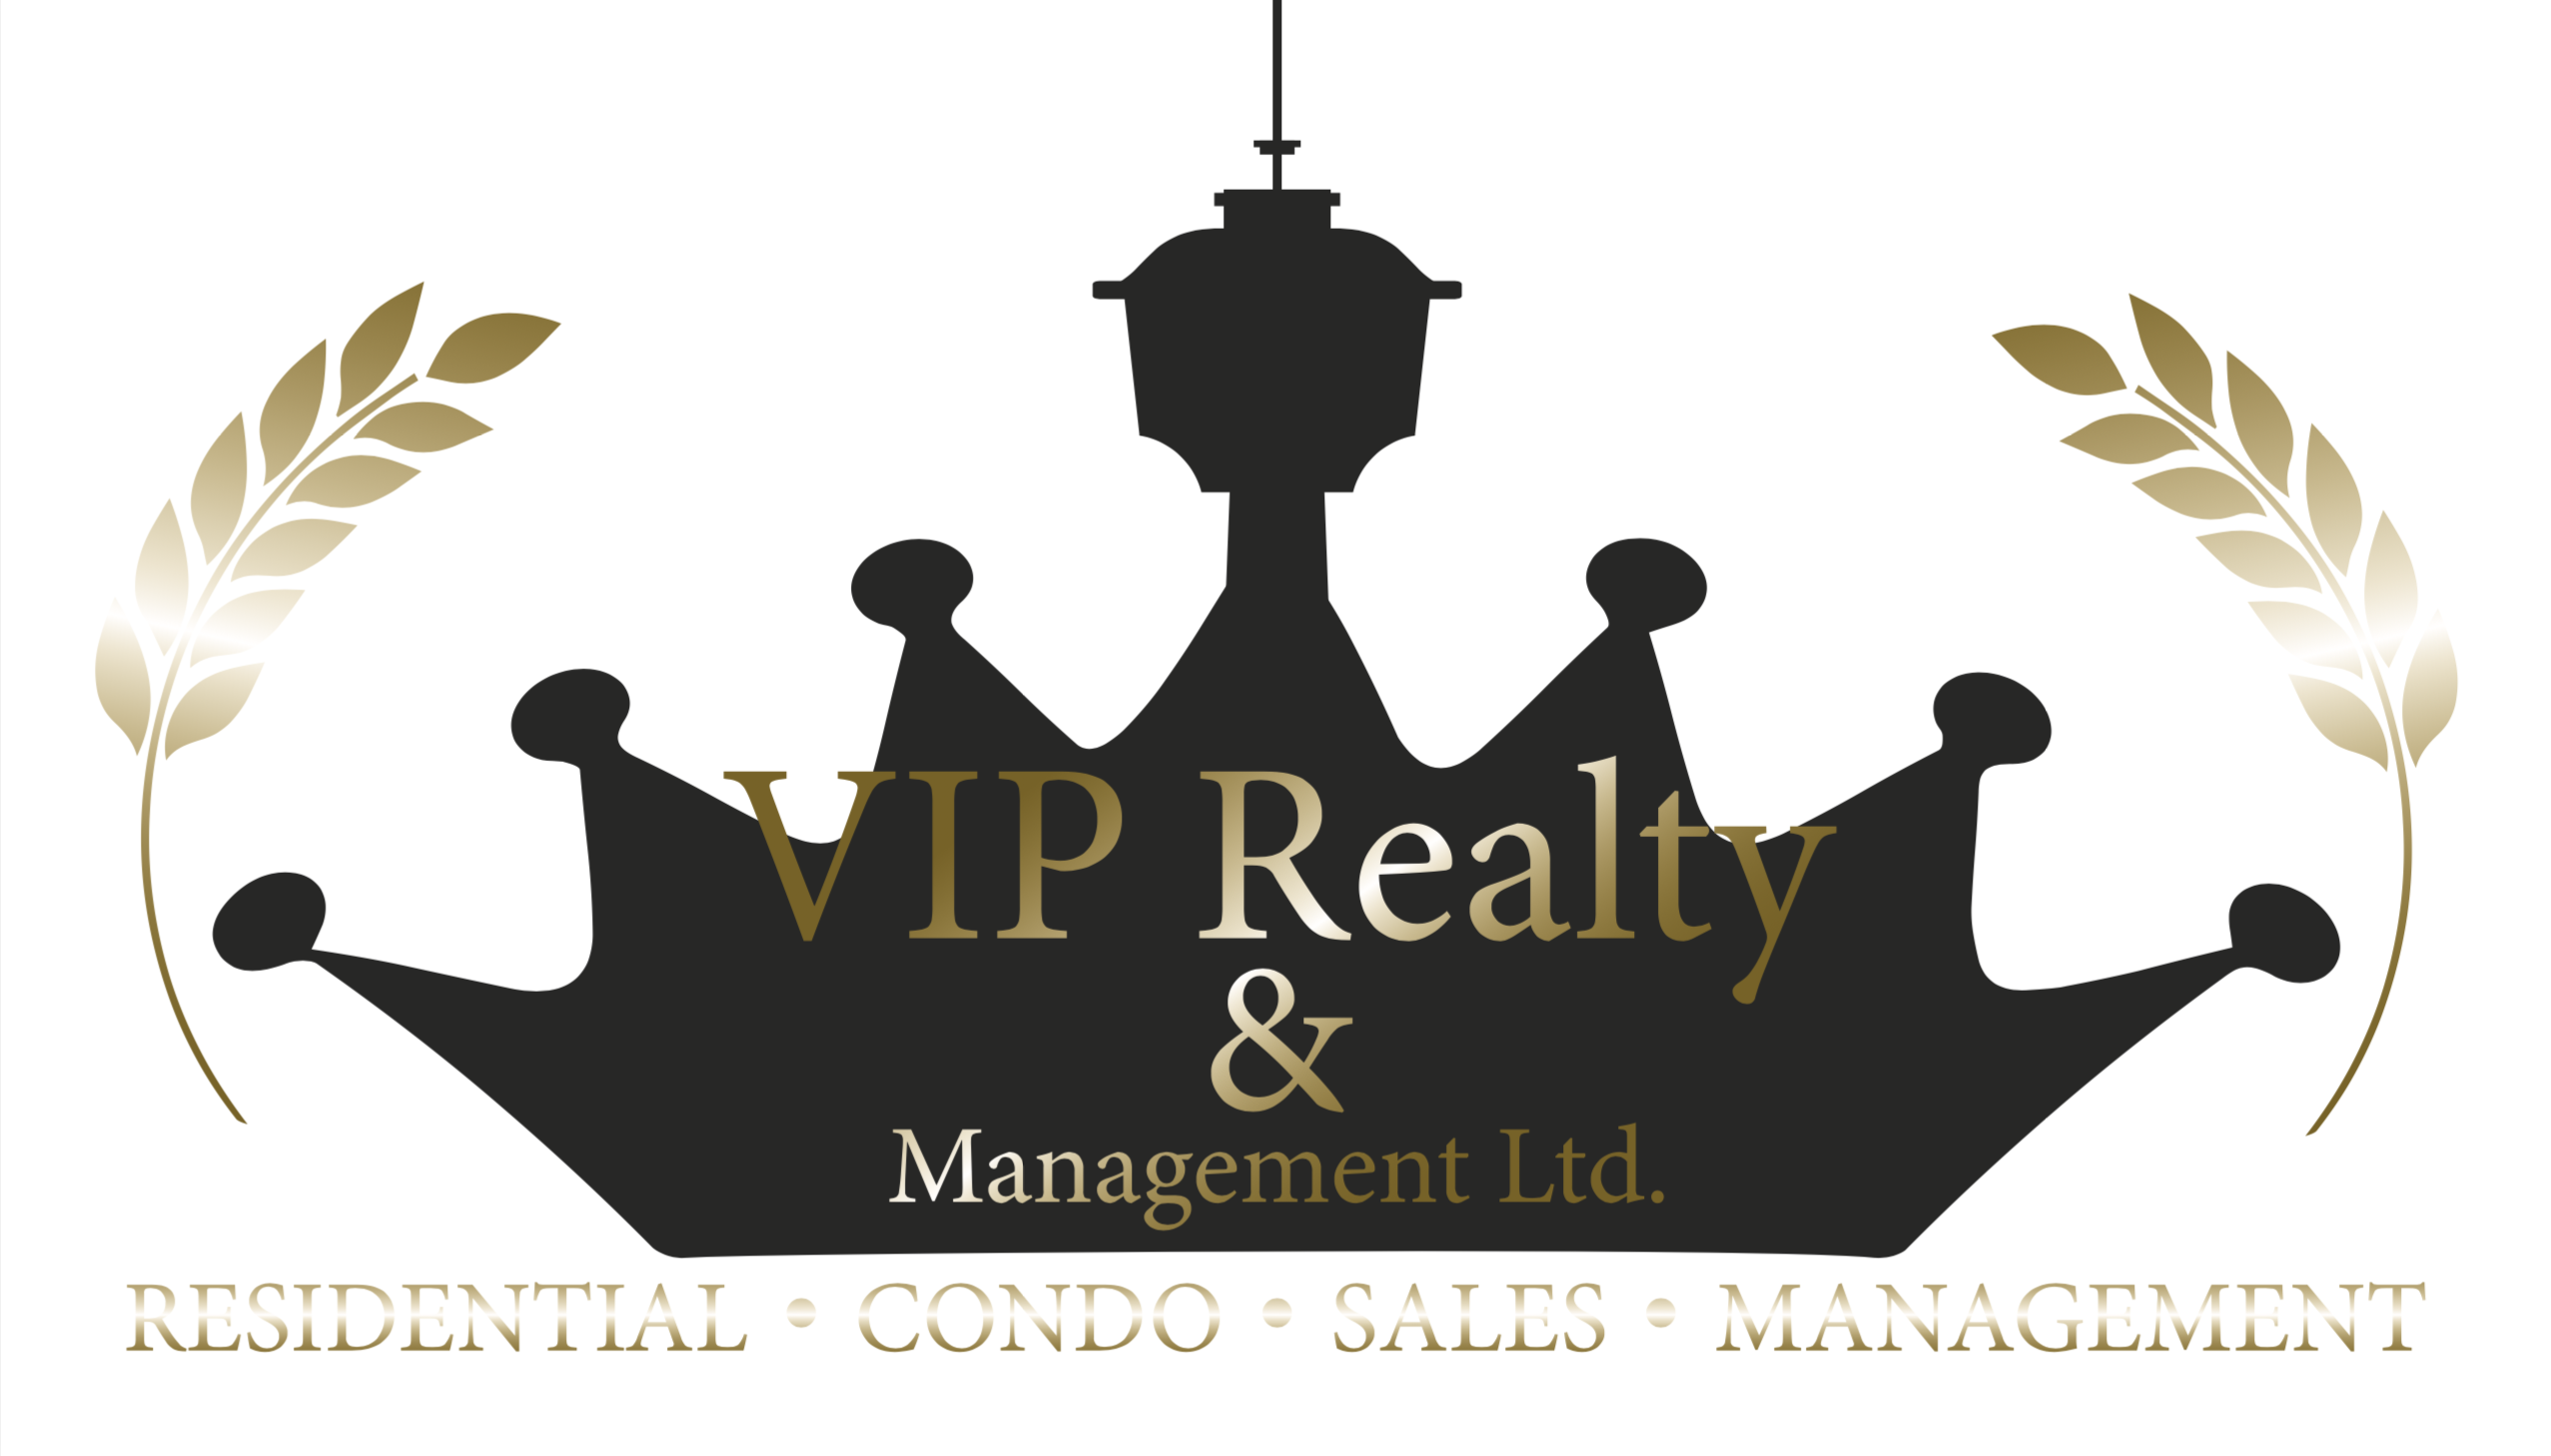 VIP Realty & Management